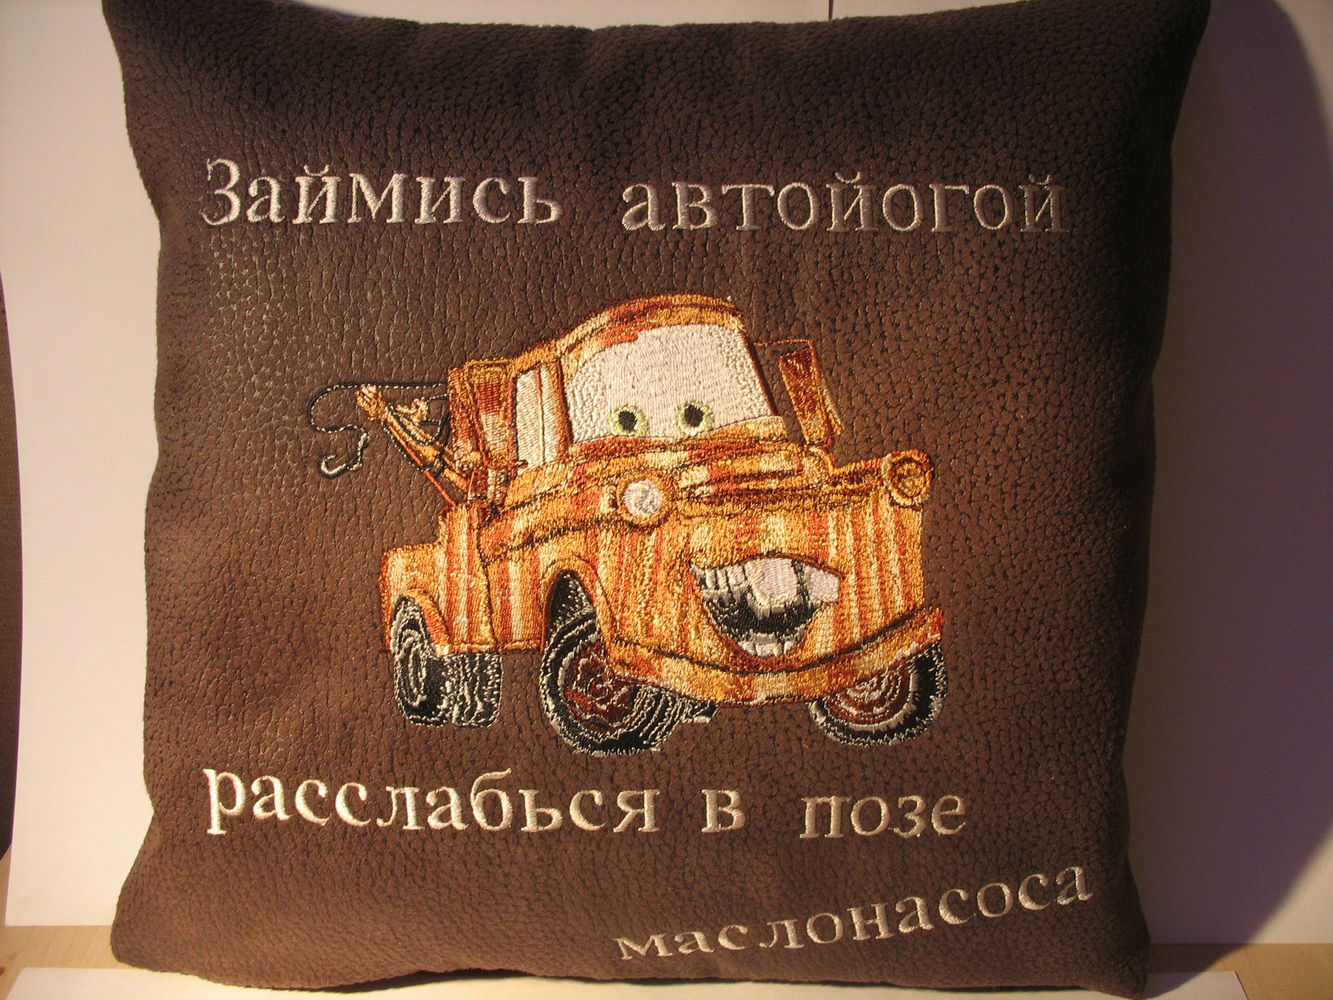 Mater Car design on pillowcase embroidered